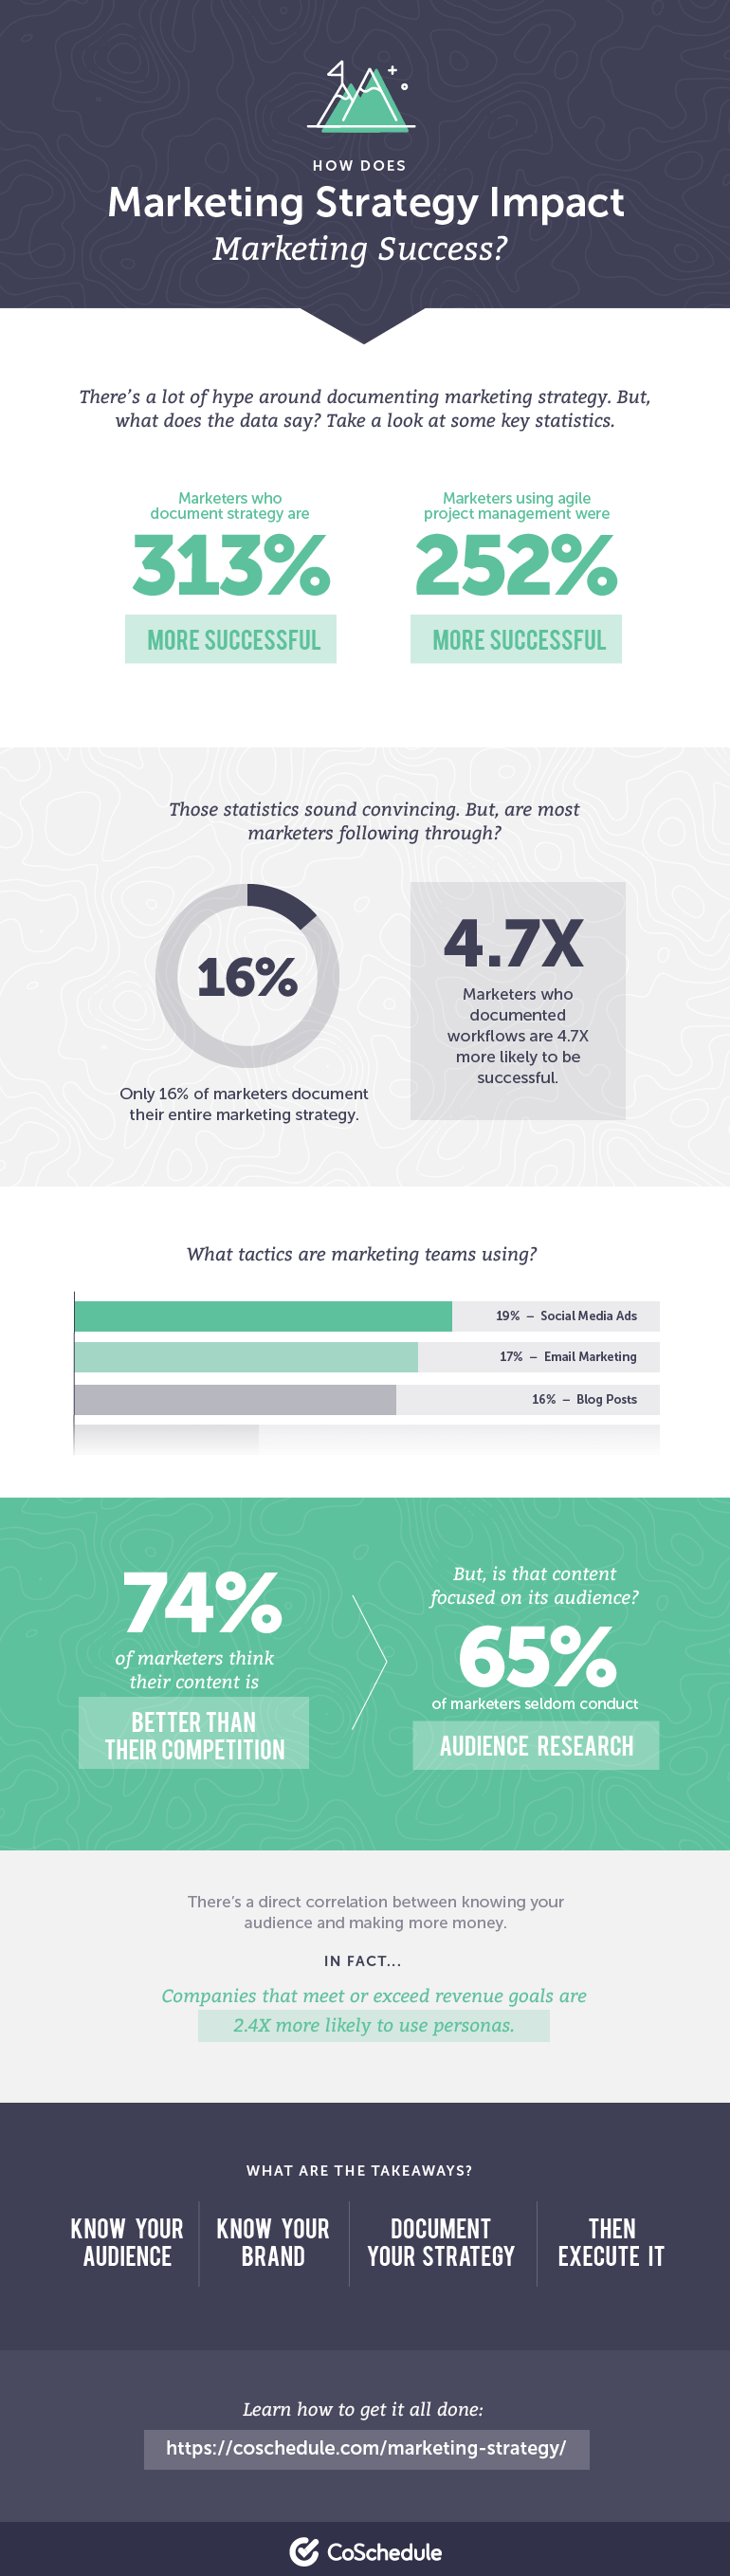 Marketing Strategy Guide Infographic